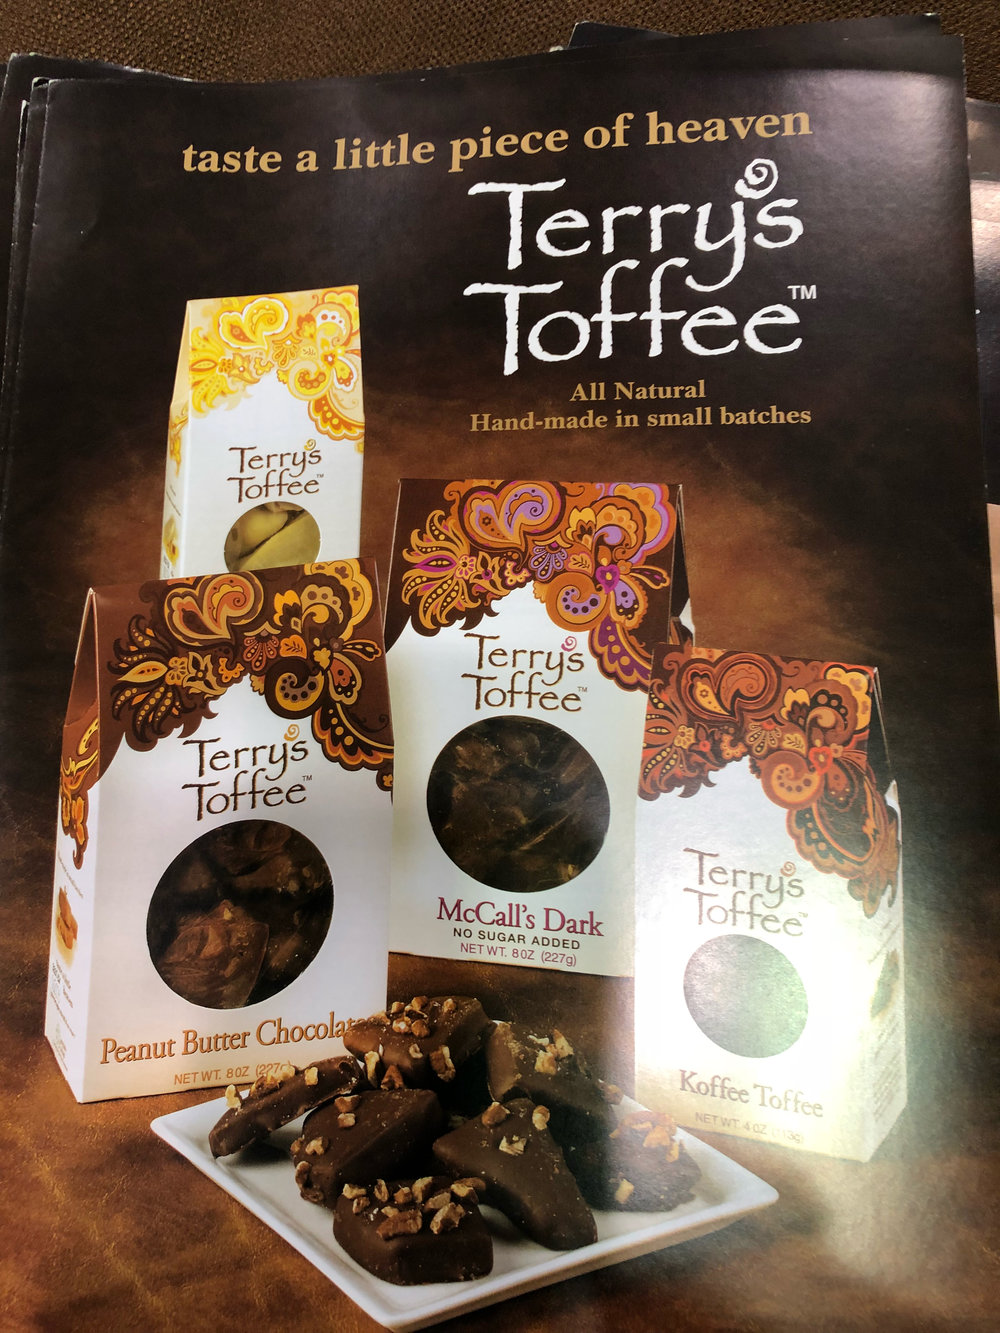 Terry's Toffee at the 2018 Summer Fancy Food Show |  Foodable Network